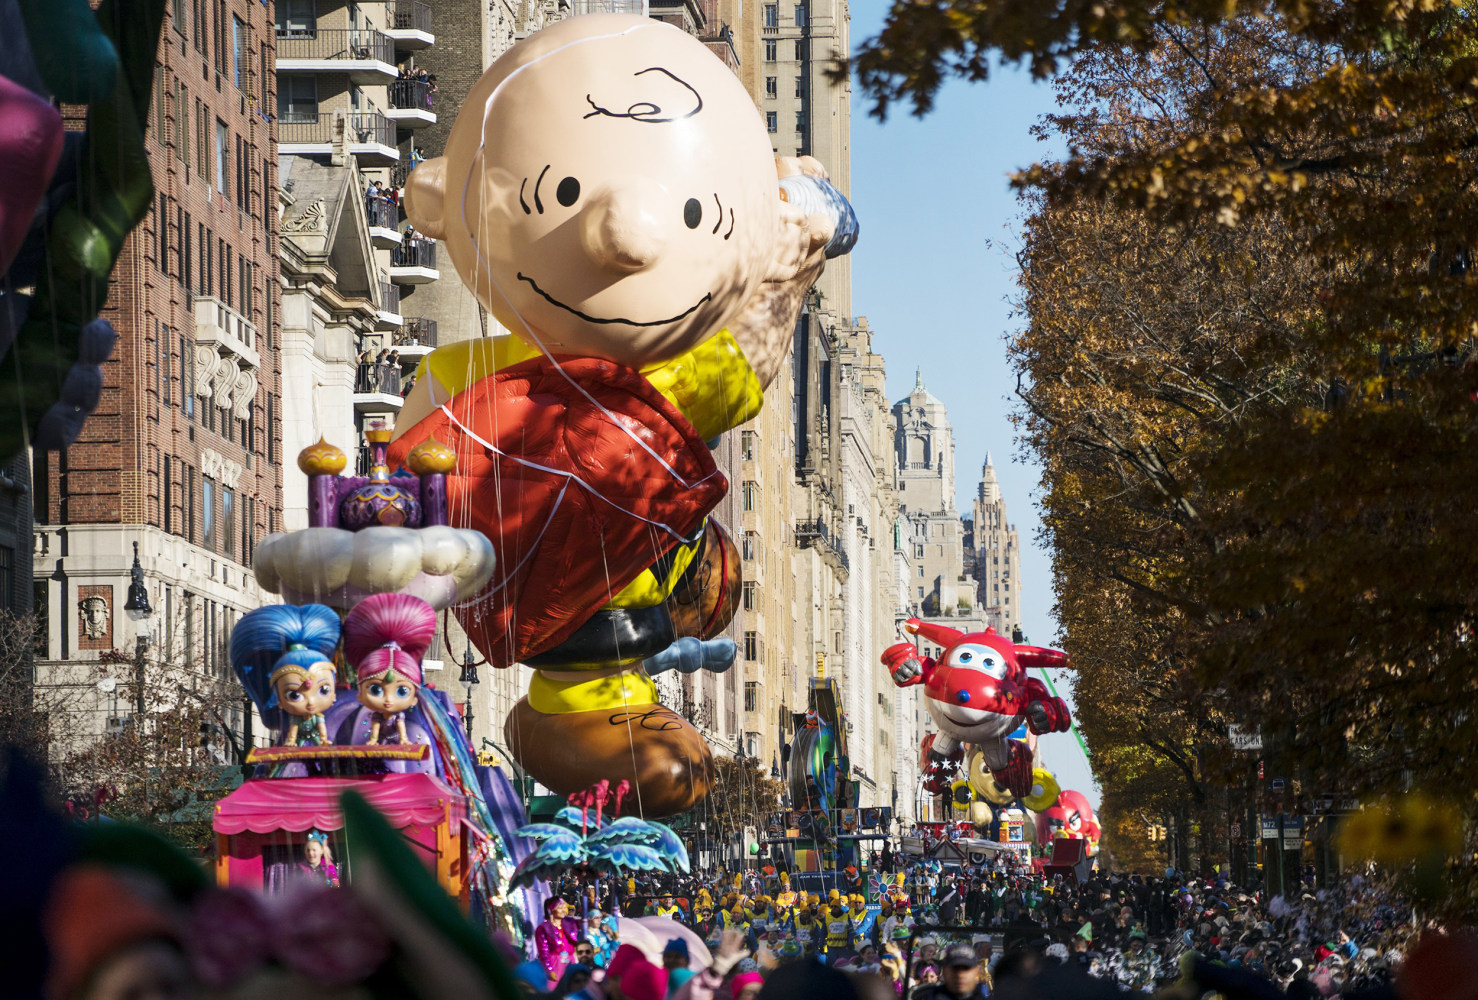 A Charlie Brown balloon moves along Central